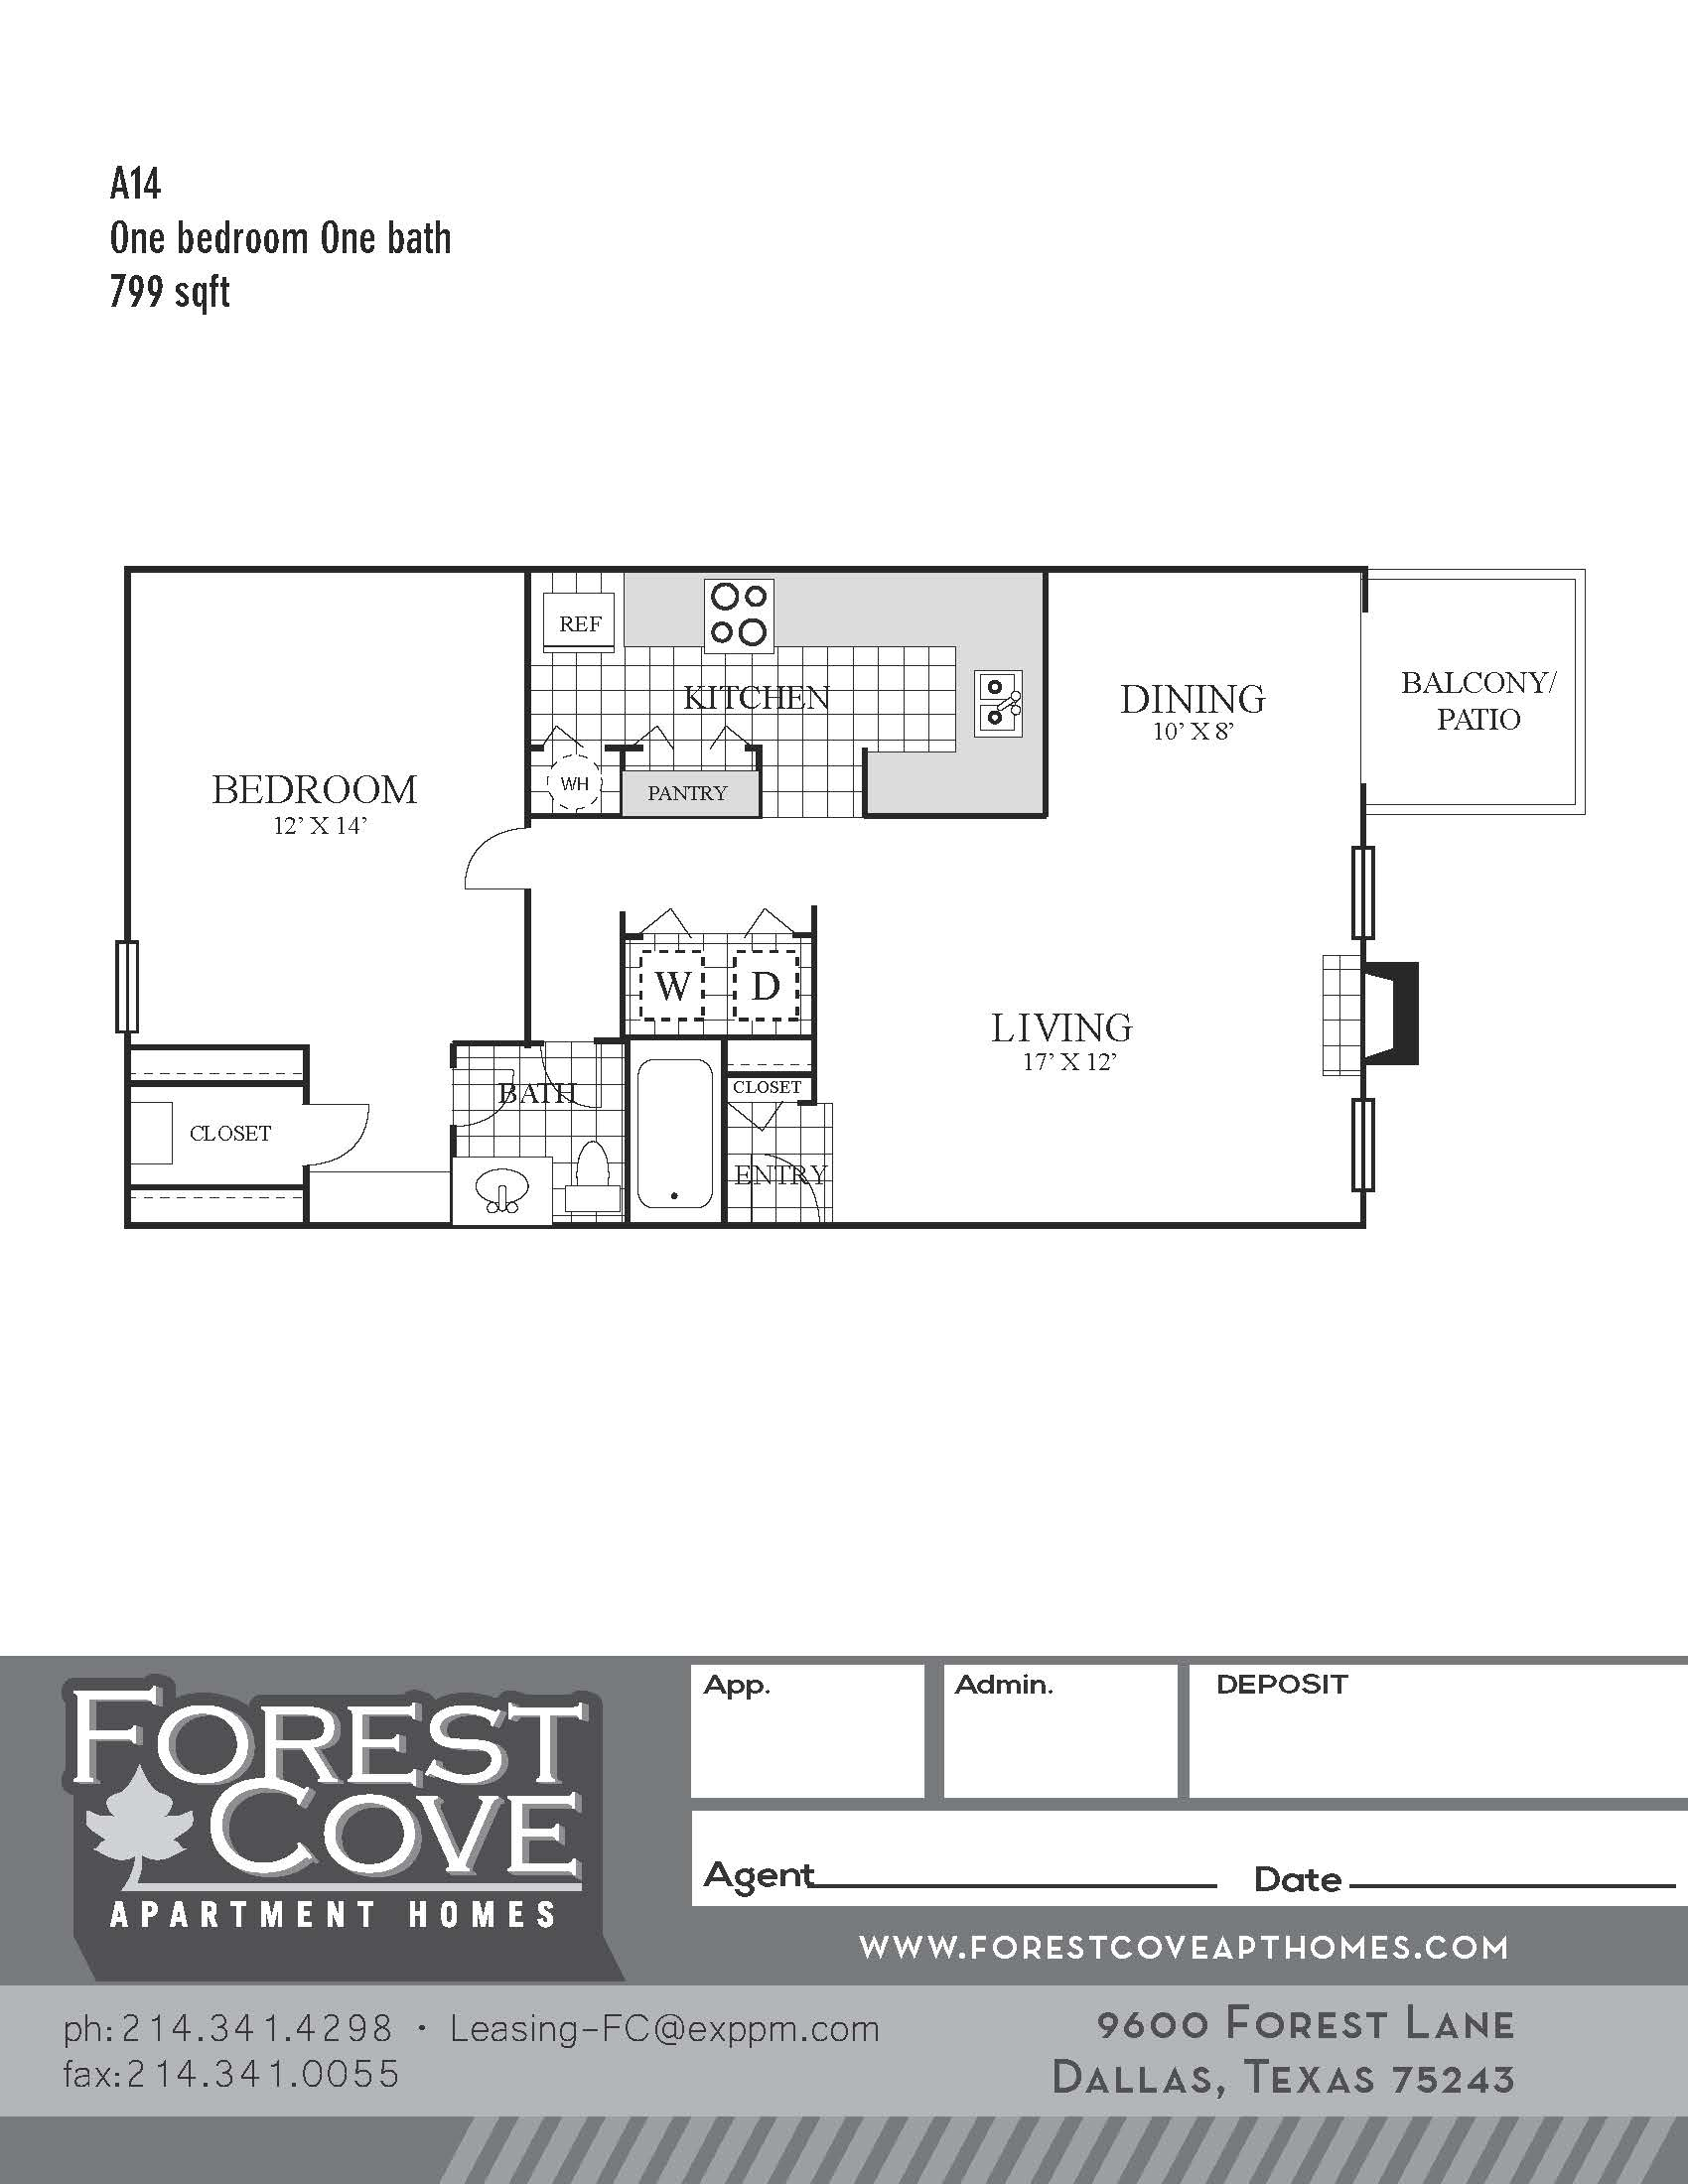 Forest Cove Apartments - Floorplan - A14